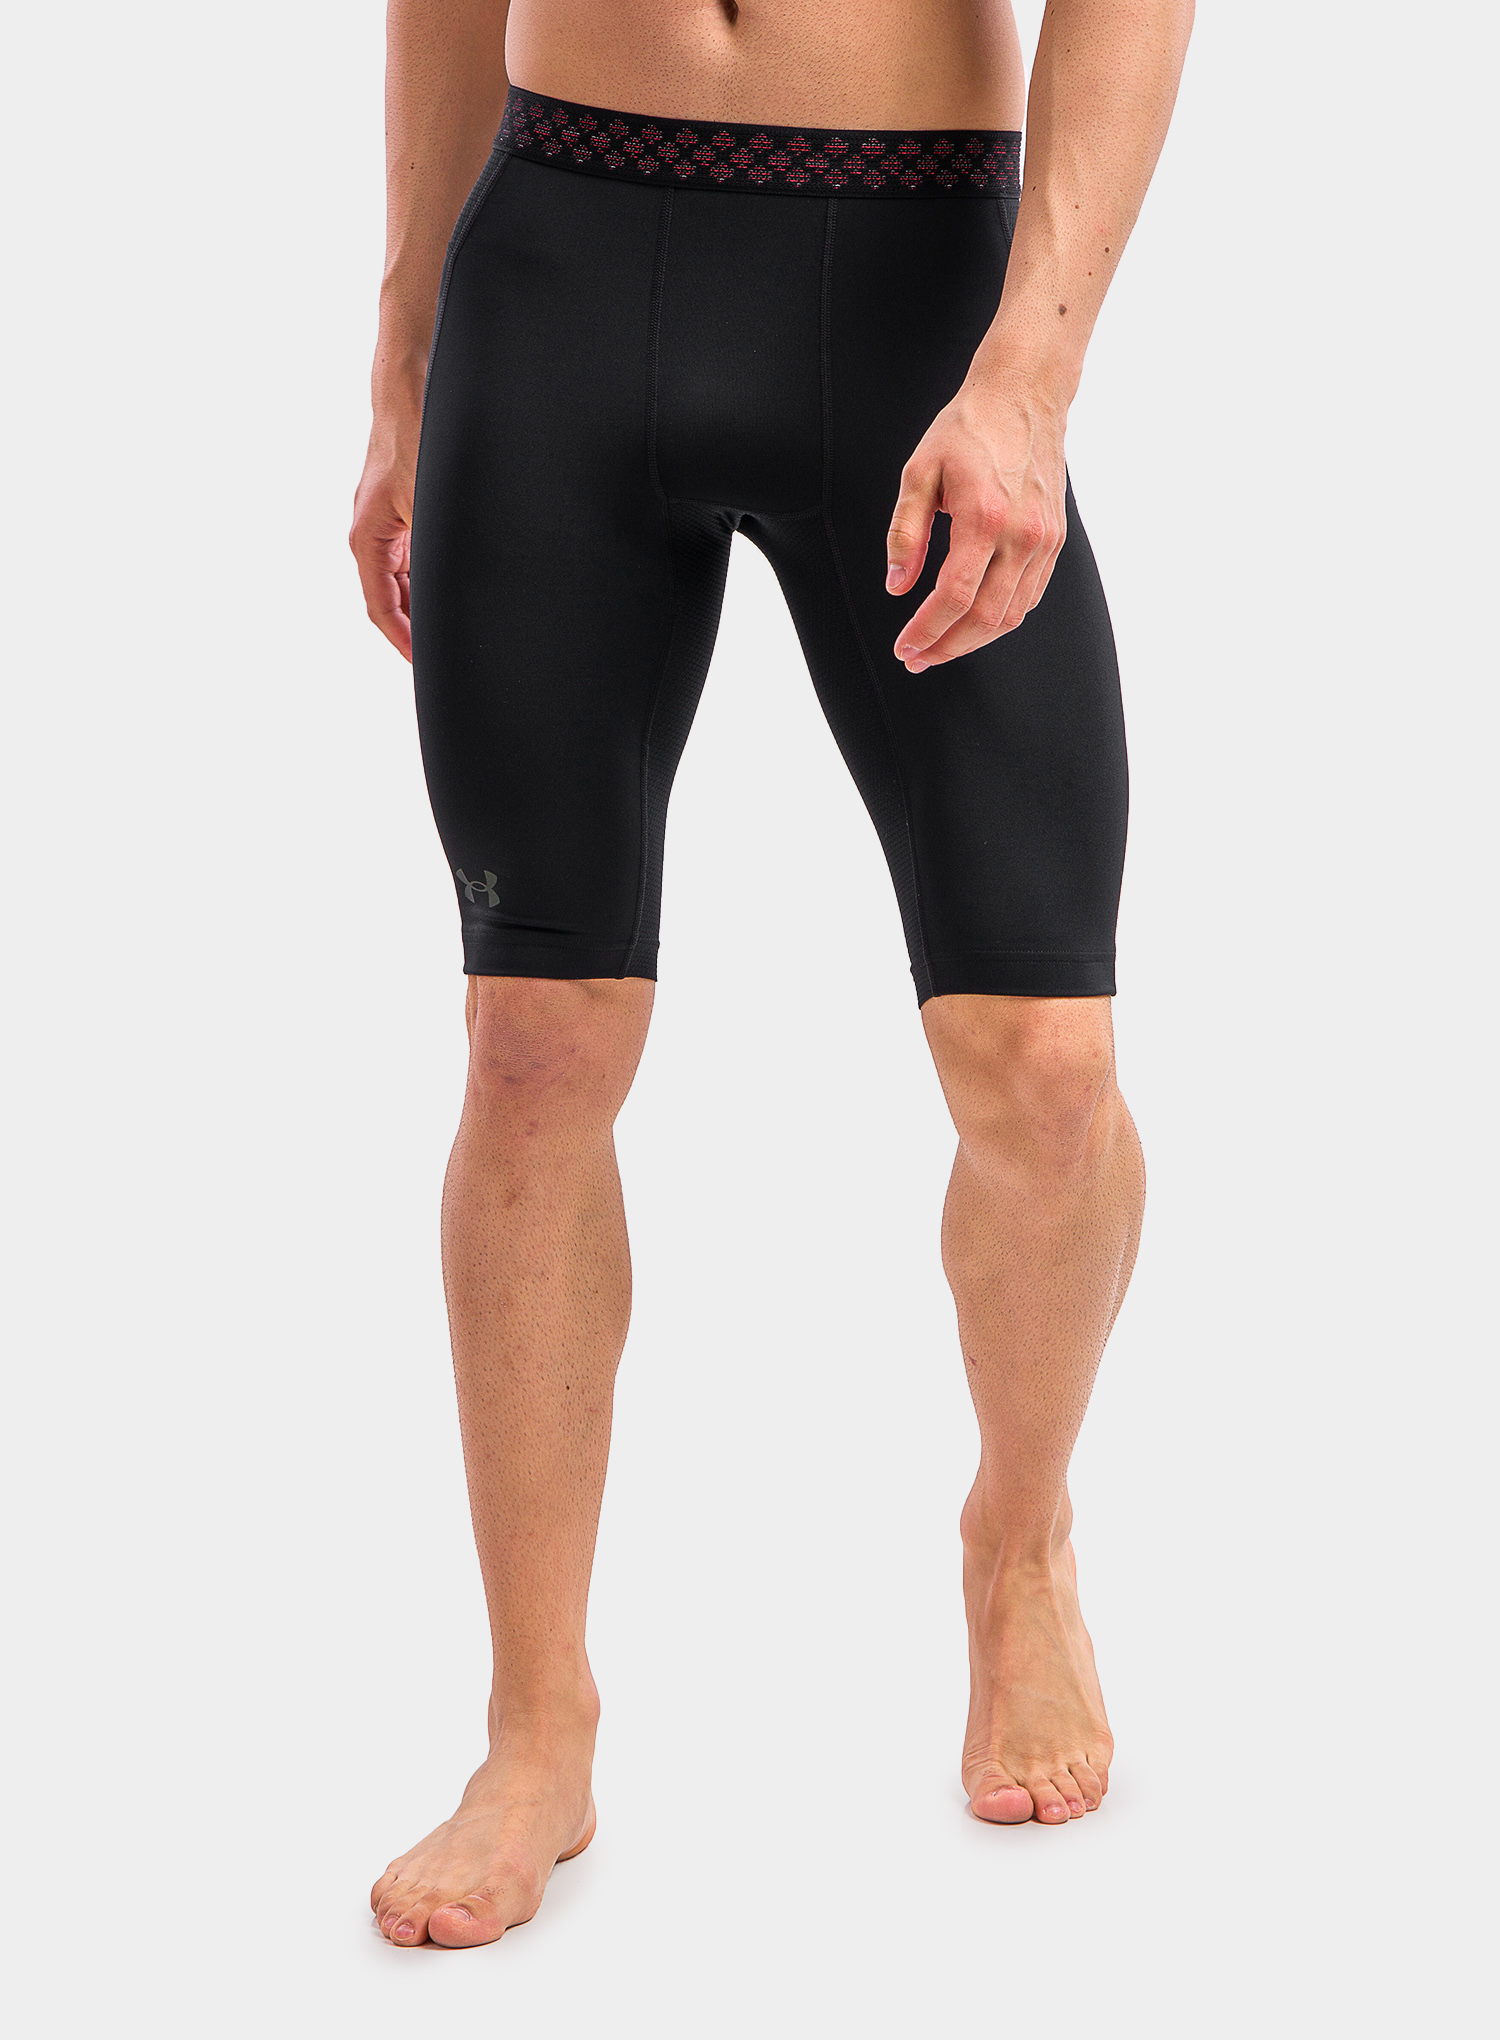 Spodenki Under Armour HG Rush 2.0 Long Shorts - black/black - zdjęcie nr. 1